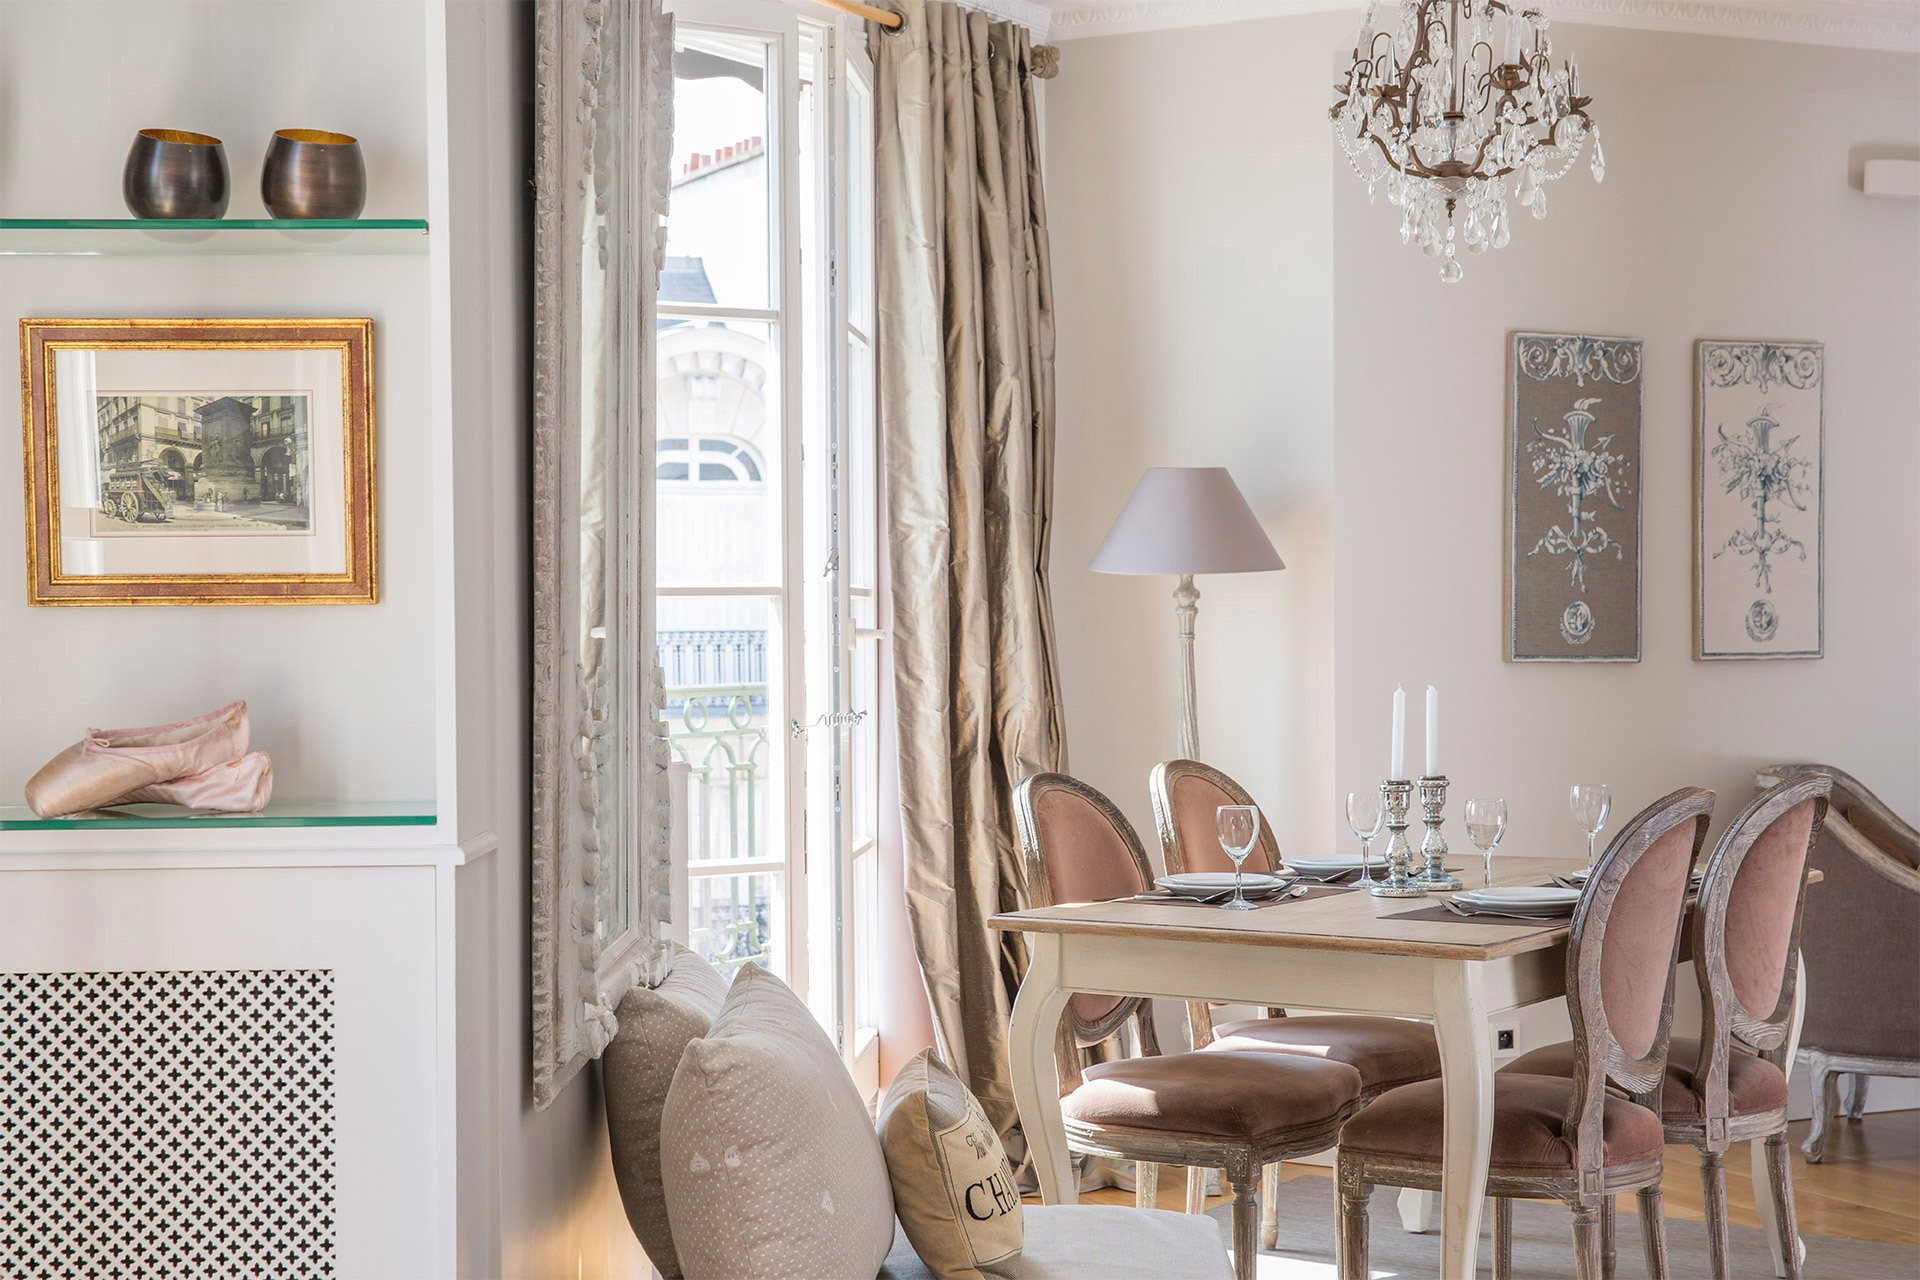 View from the seating area towards the dining table in the Margaux vacation rental offered by Paris Perfect